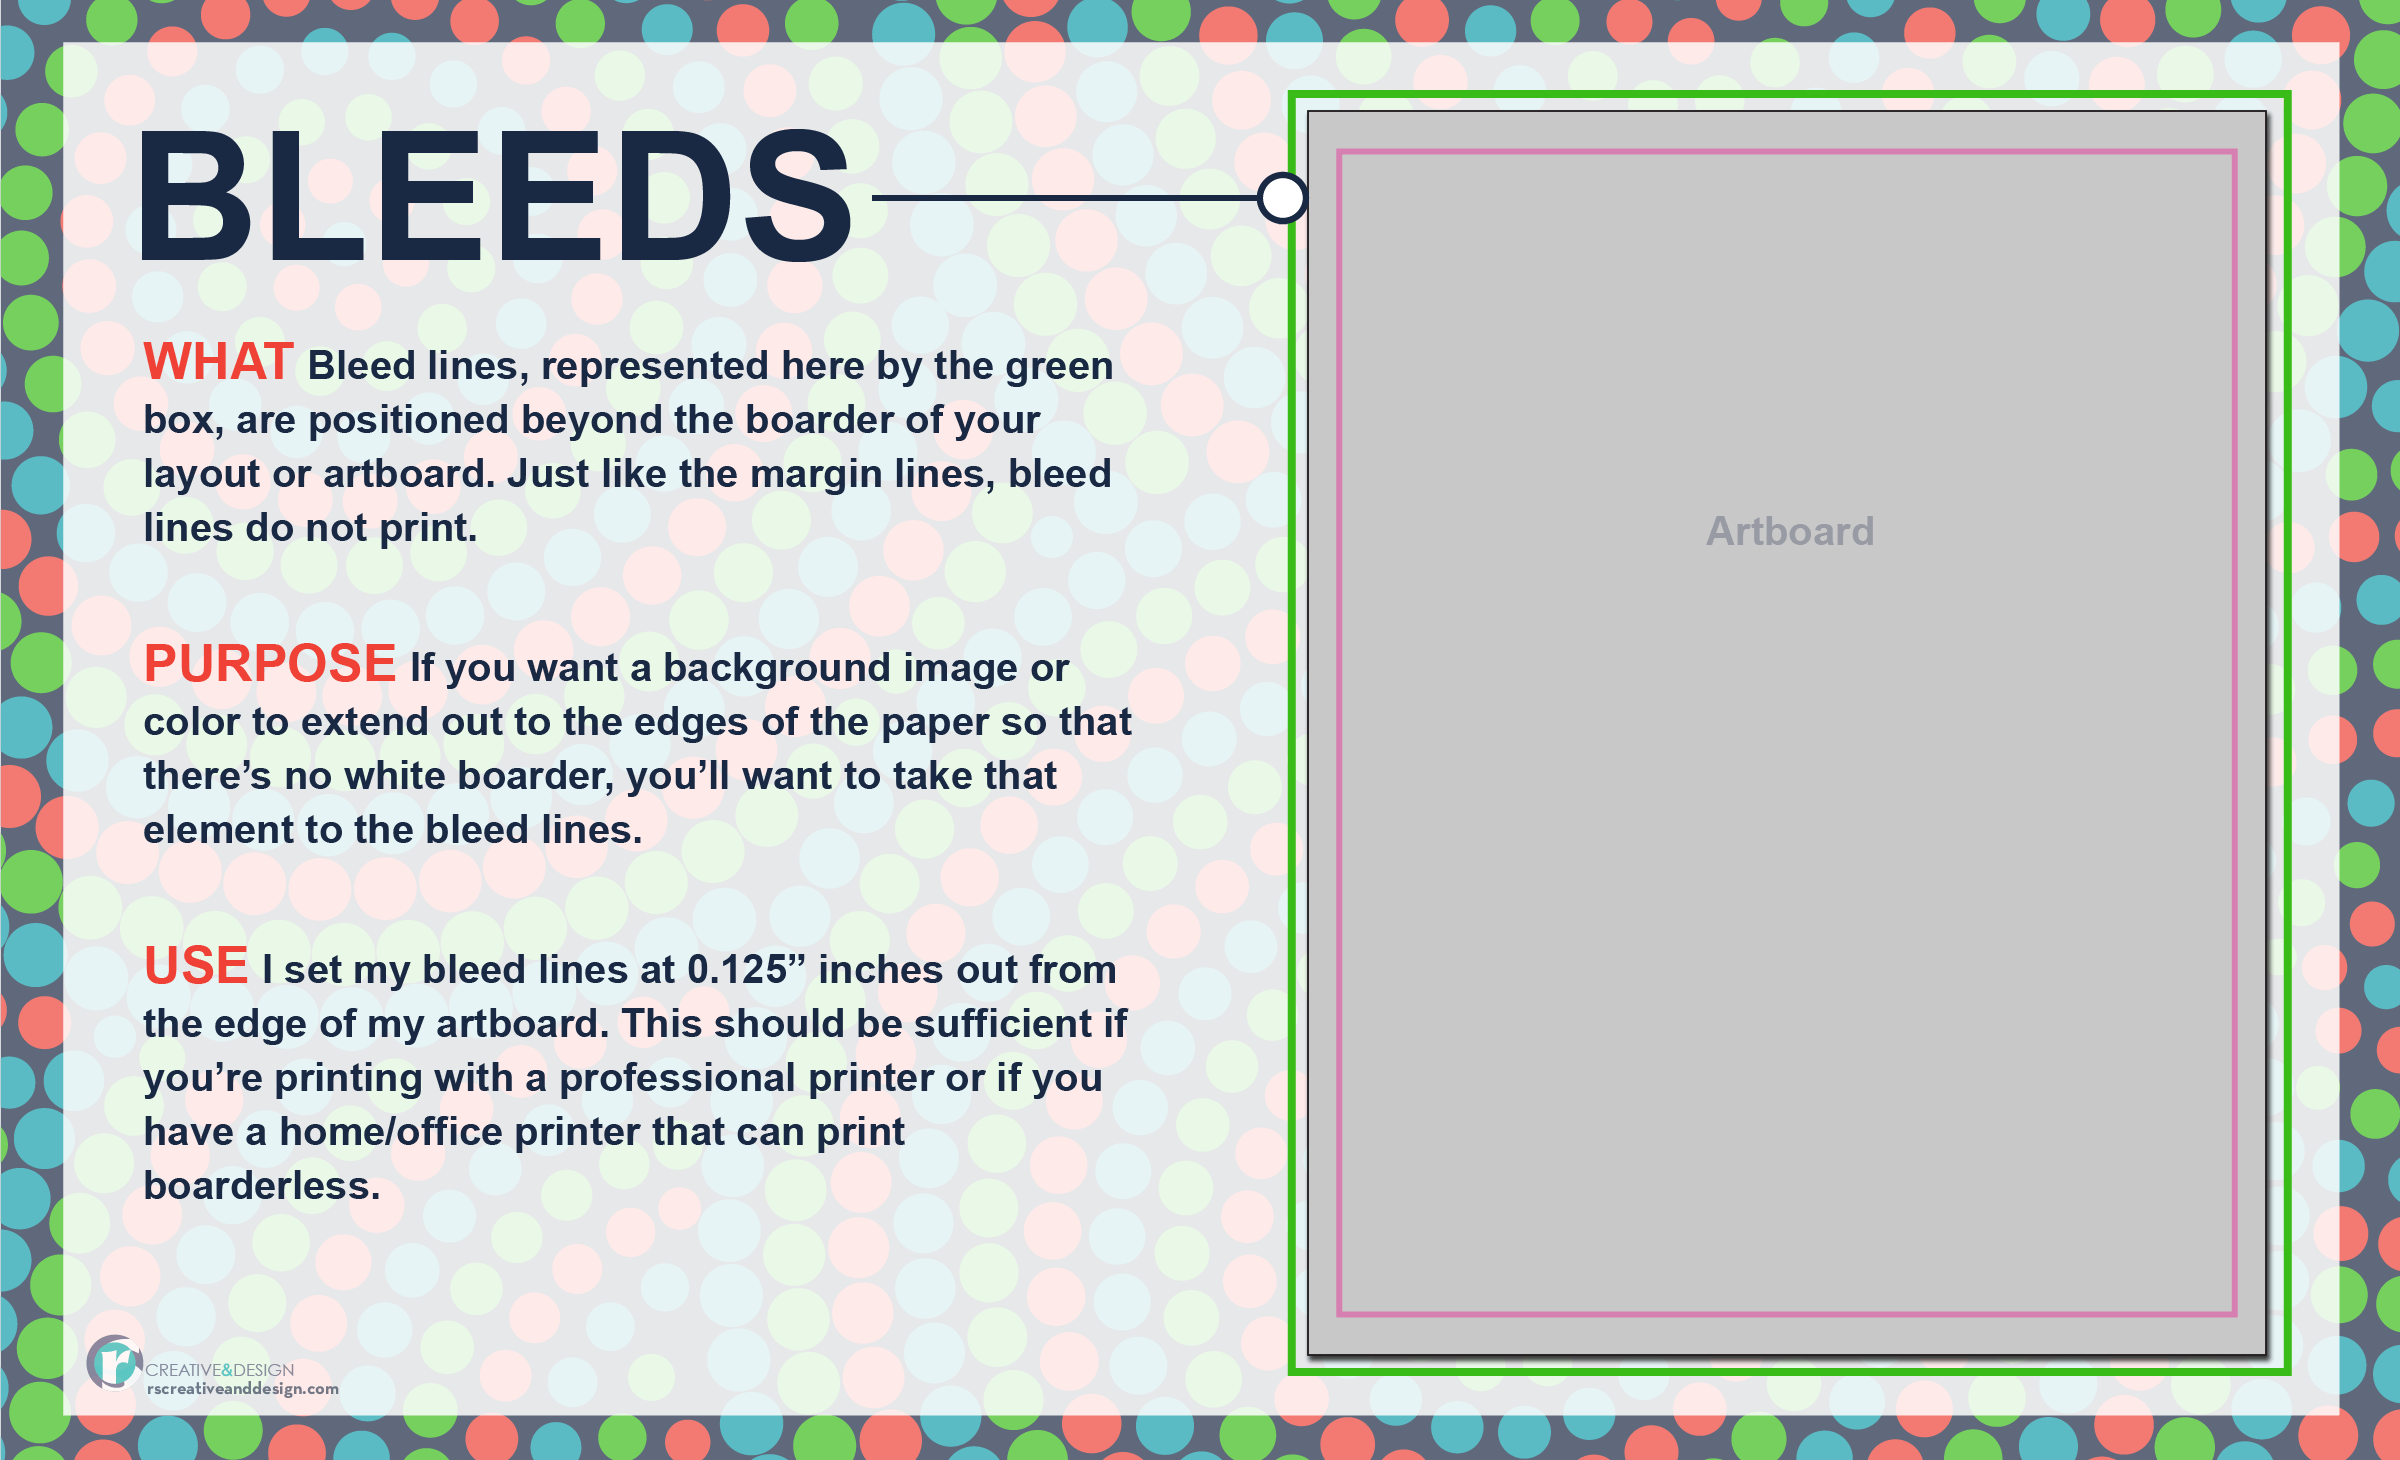 Bleed lines — what they are and how to use them in your layout